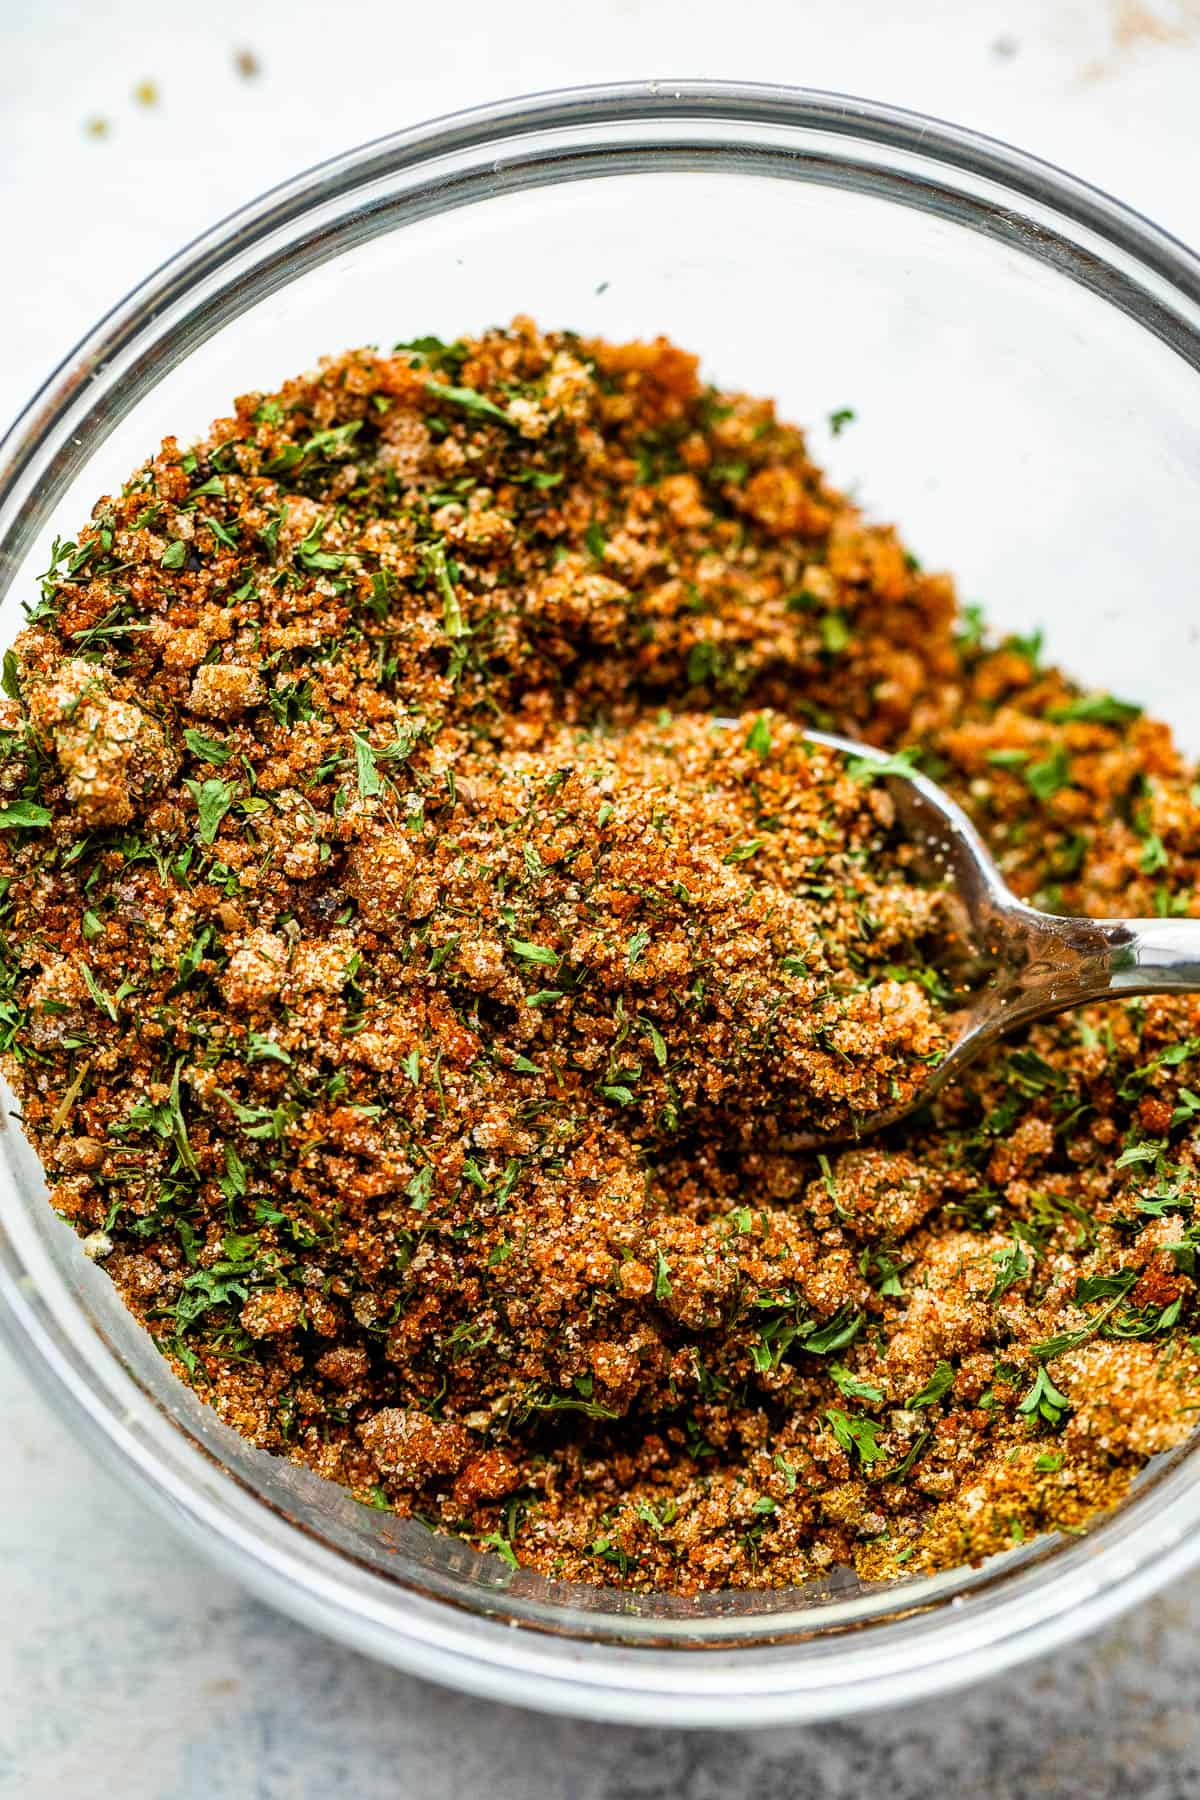 seafood seasoning blend in a small glass mixing bowl with a teaspoon inside